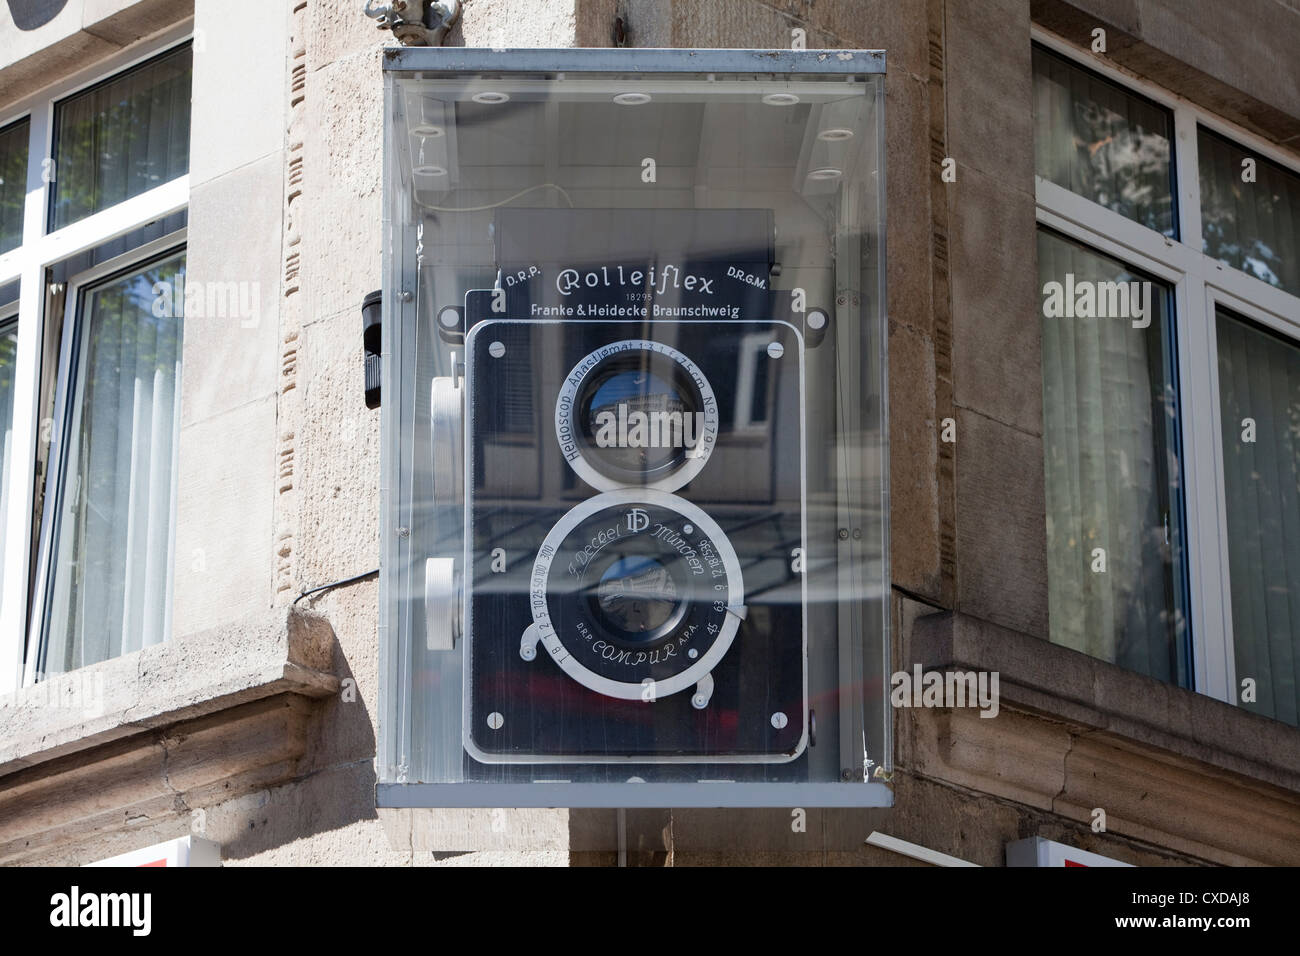 A big Rolleiflex camera in front of a photo shop, - Stock Image